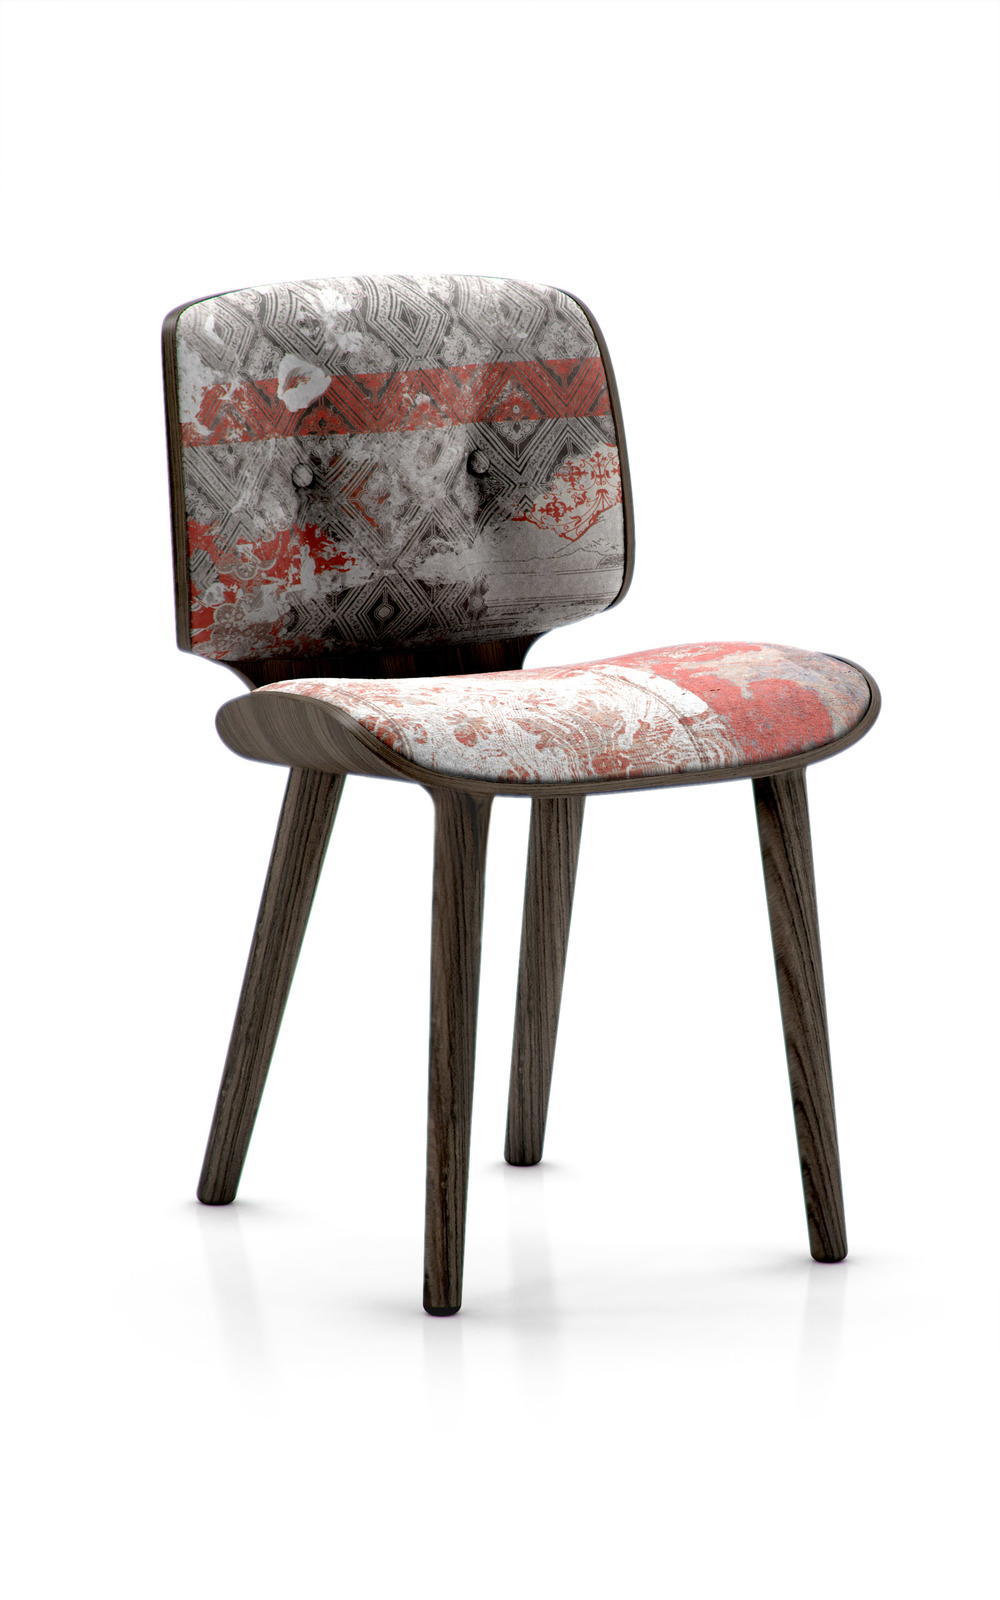 nut_dining_chair_oil_by_marcel_wanders_for_moooi.jpg